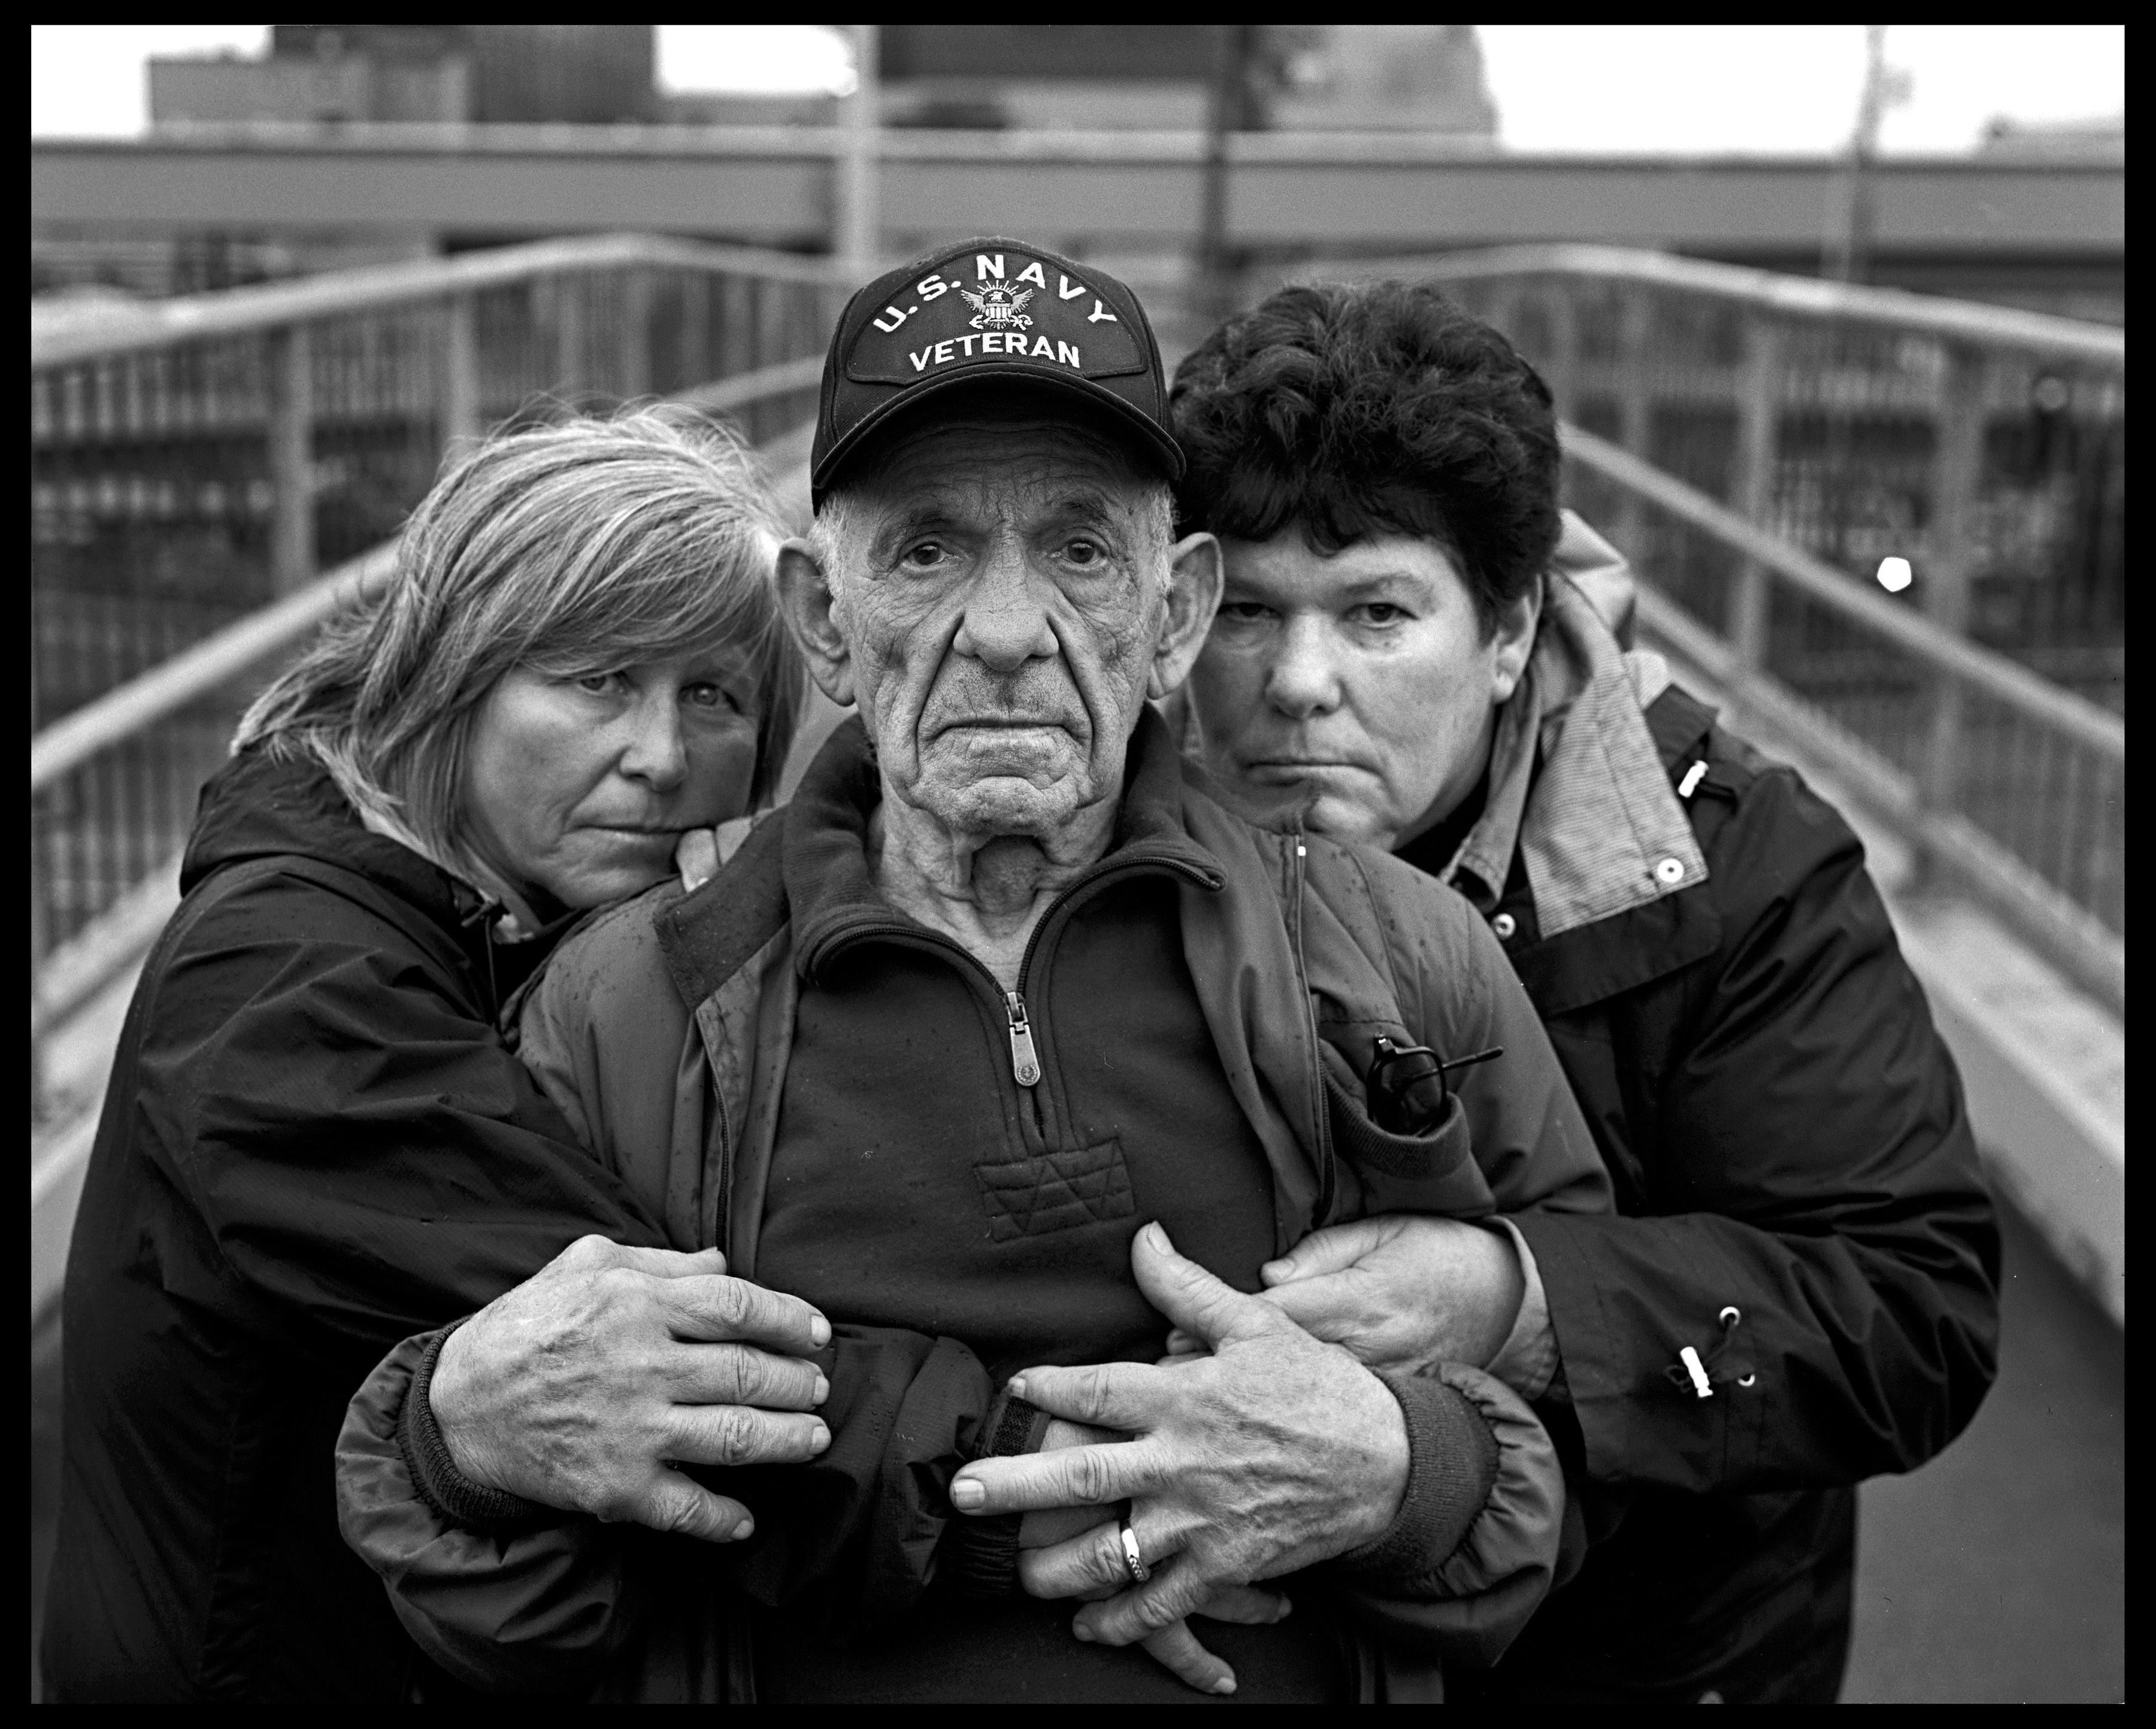 Vince Mardesich, who worked at Scott Paper Co. for 32 years starting in 1954, with his daughters, Angie Mardesich (left), who worked at the mill for 16 years, until December, and Joanne Moore, who has worked at the mill for 38 years. In the past several years, Moore has driven a forklift, a job she absolutely loves. It's the same job her father did. The closure of the paper mill, now run by Kimberly-Clark, marks the end of an era in Everett. (Photo by Mark and Annie Mulligan, The Herald)